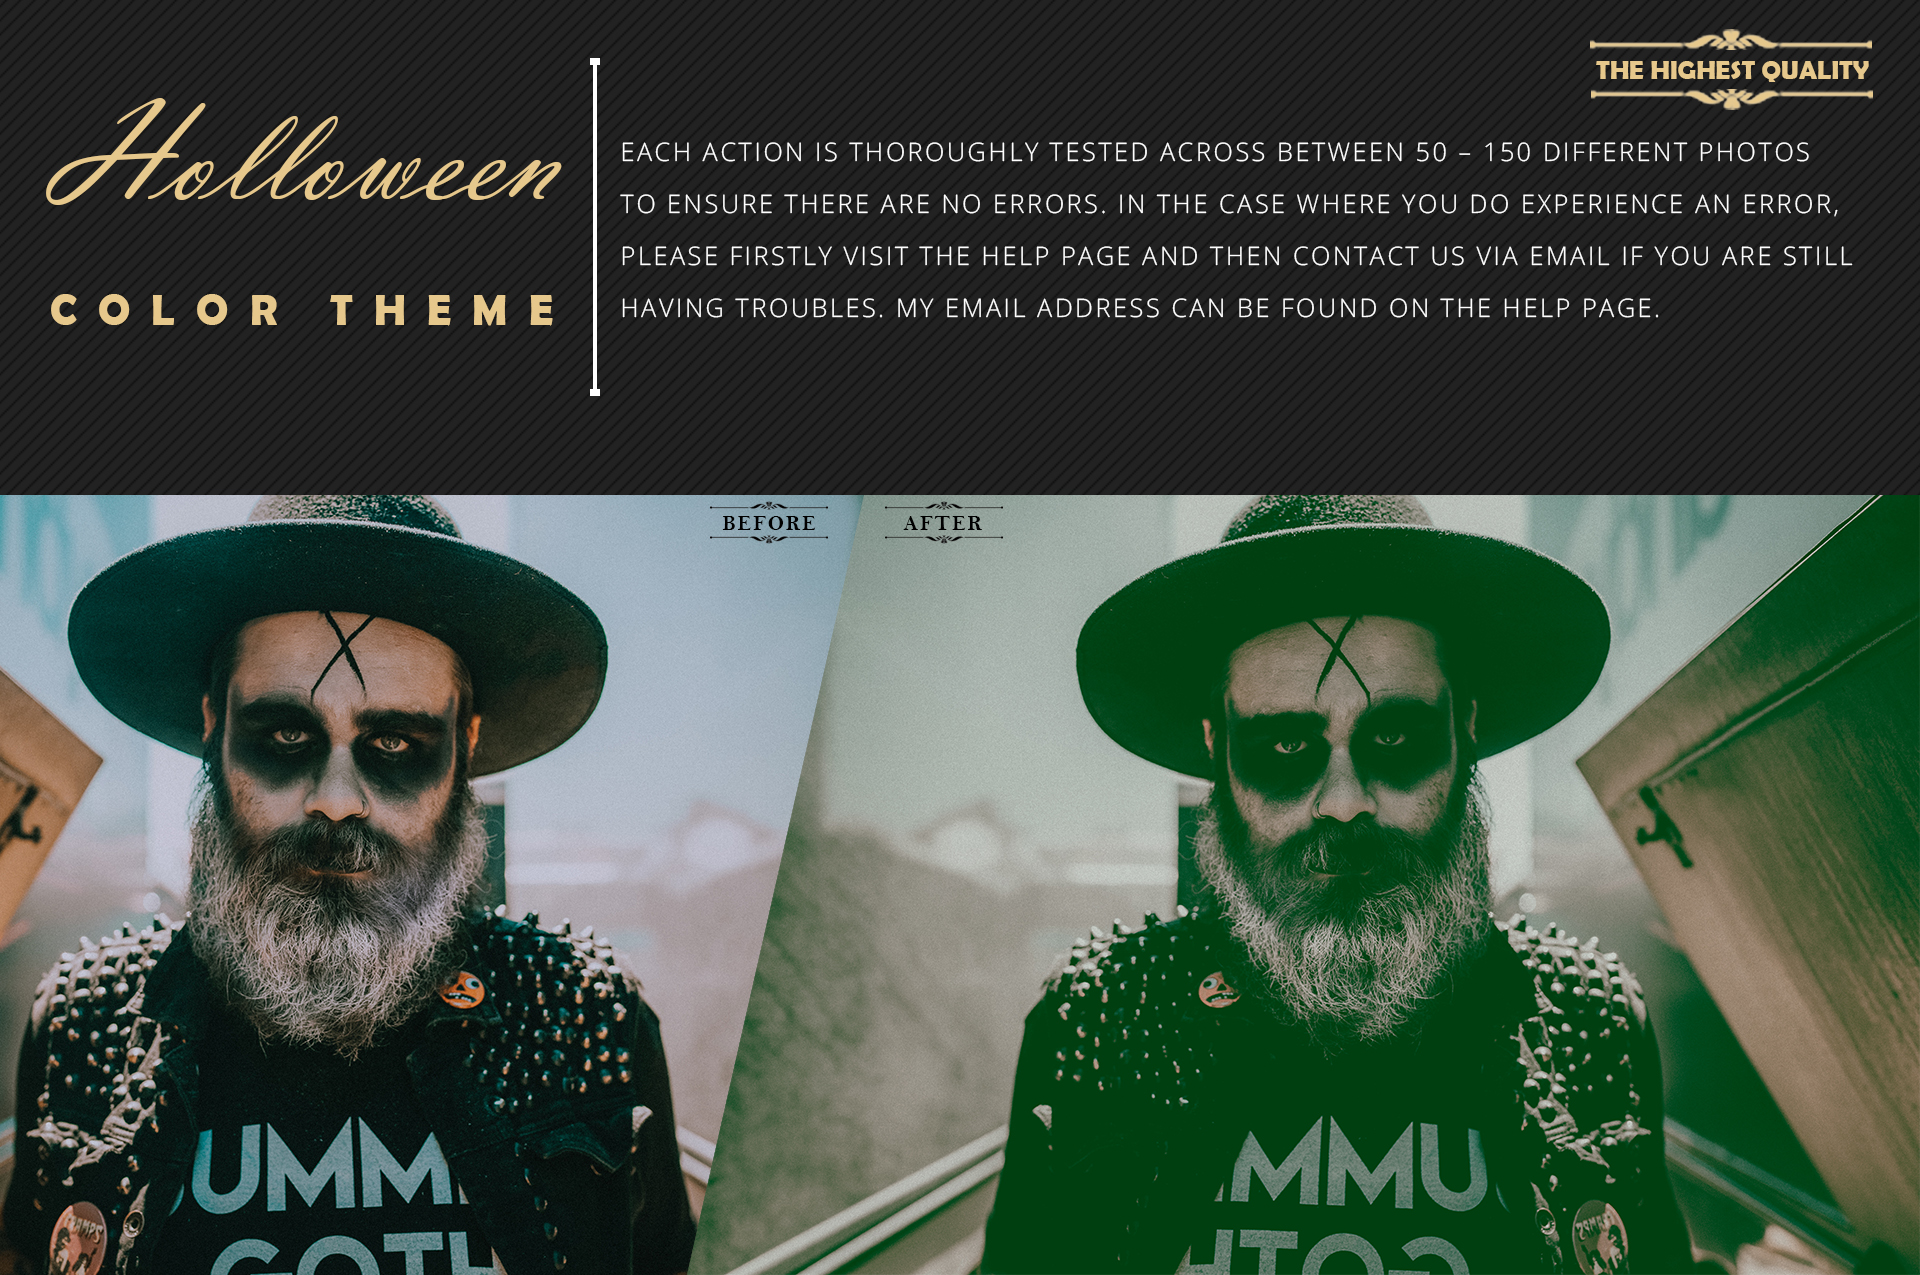 Halloween Theme color grading Photoshop Actions example image 6